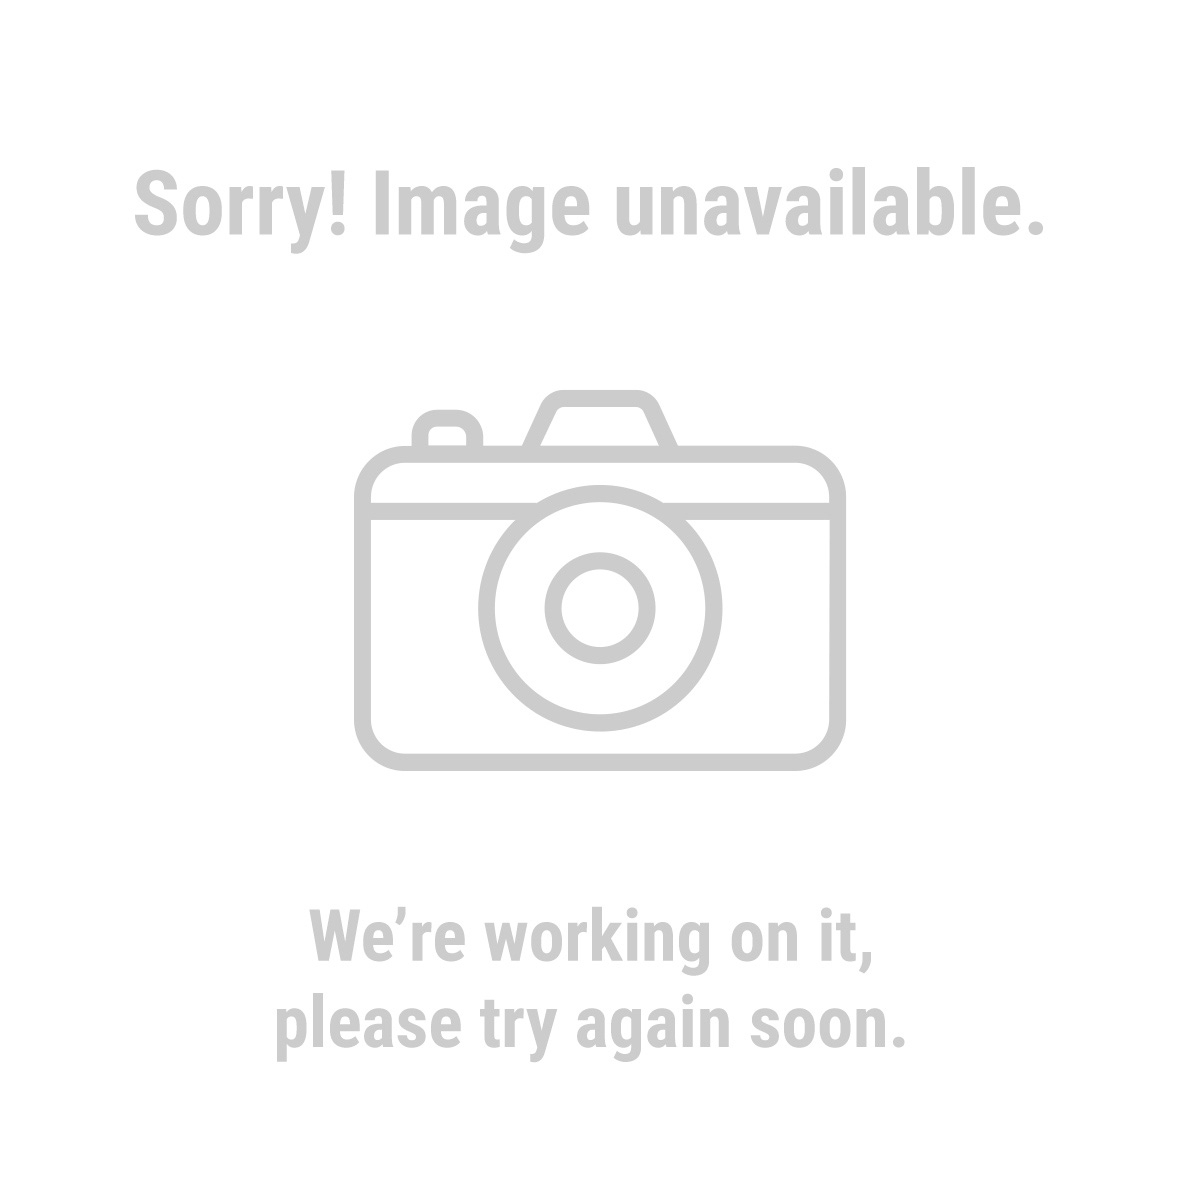 Storehouse 67553 36 Piece Brass Threaded Inserts